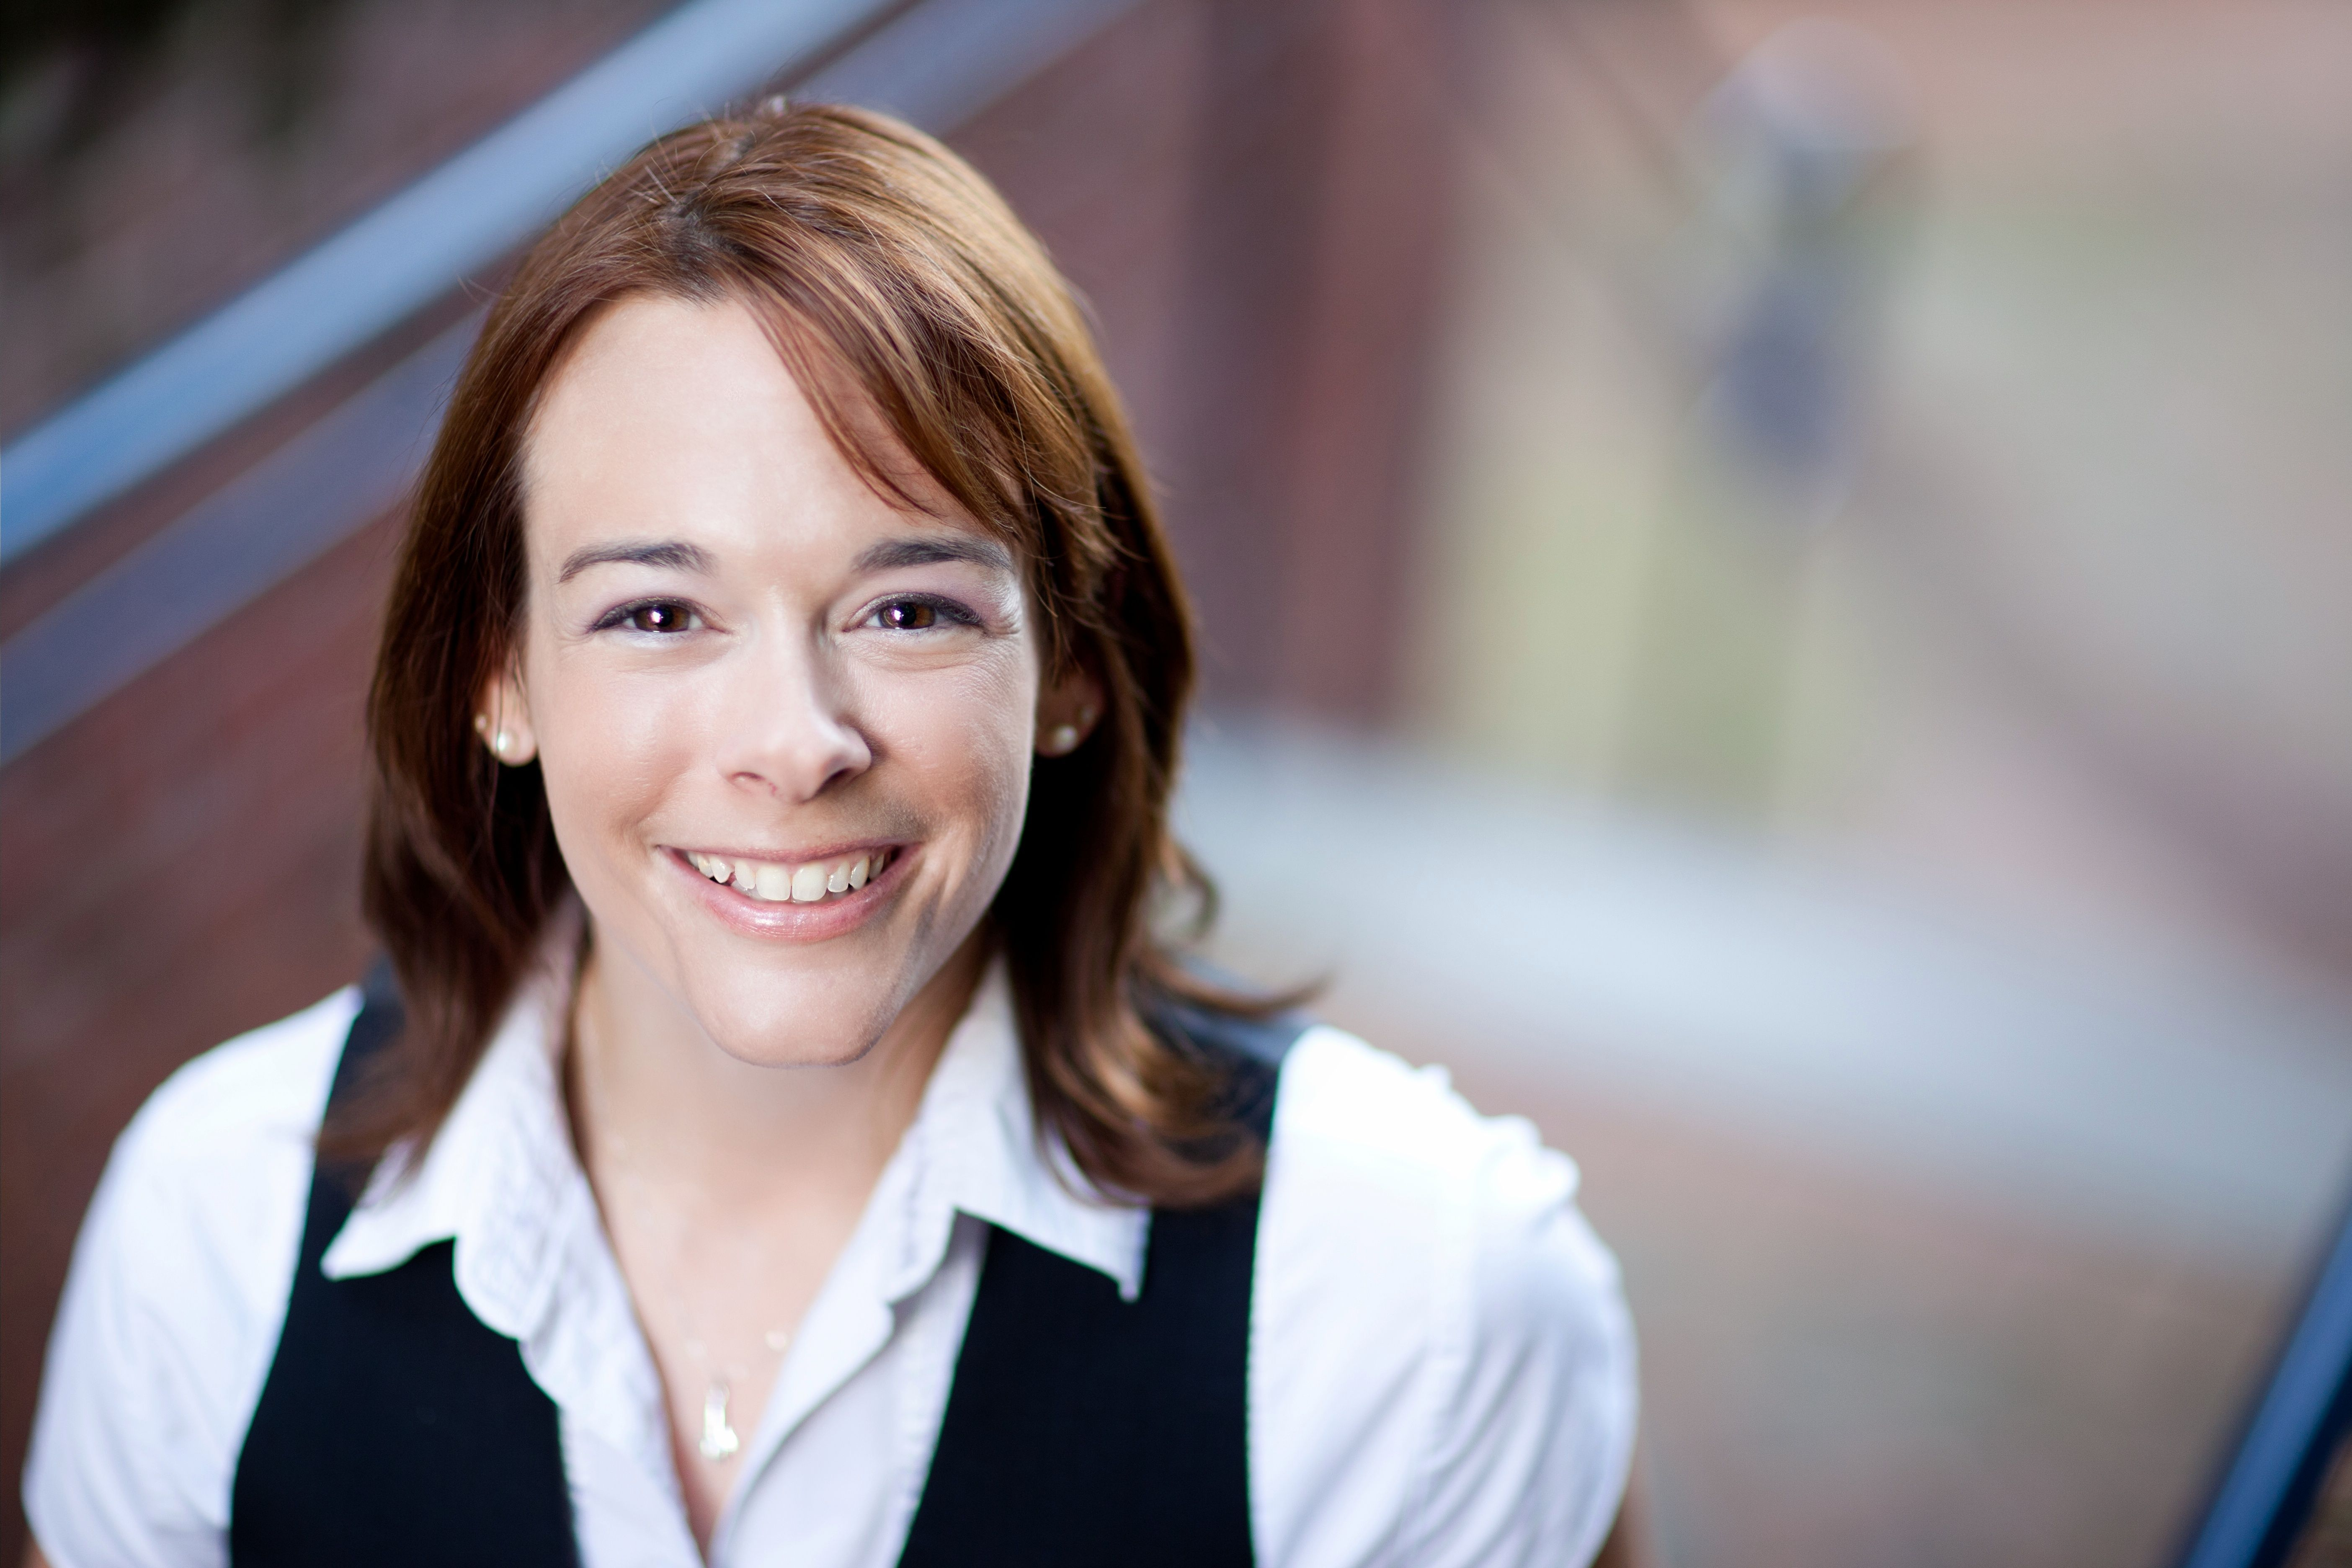 Corporate photography and headshot by mary kate mckenna